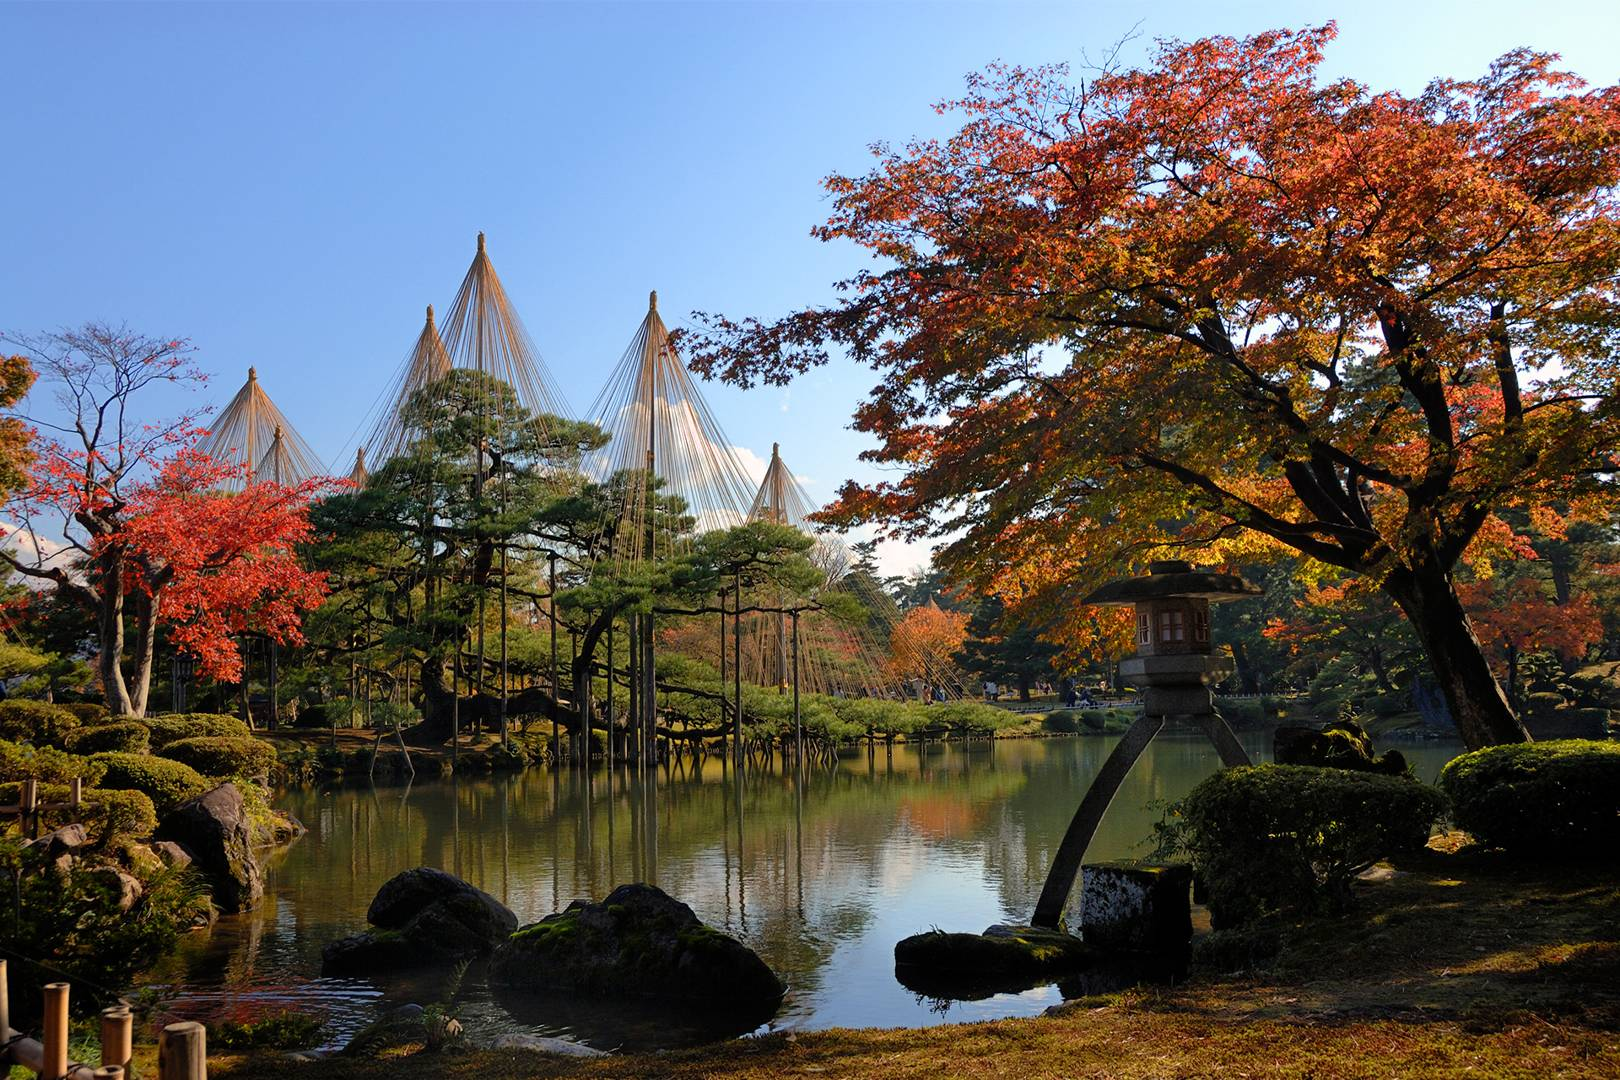 Explore the traditional heritage of Japan on a trip to Tokyo and scenic Ishikawa